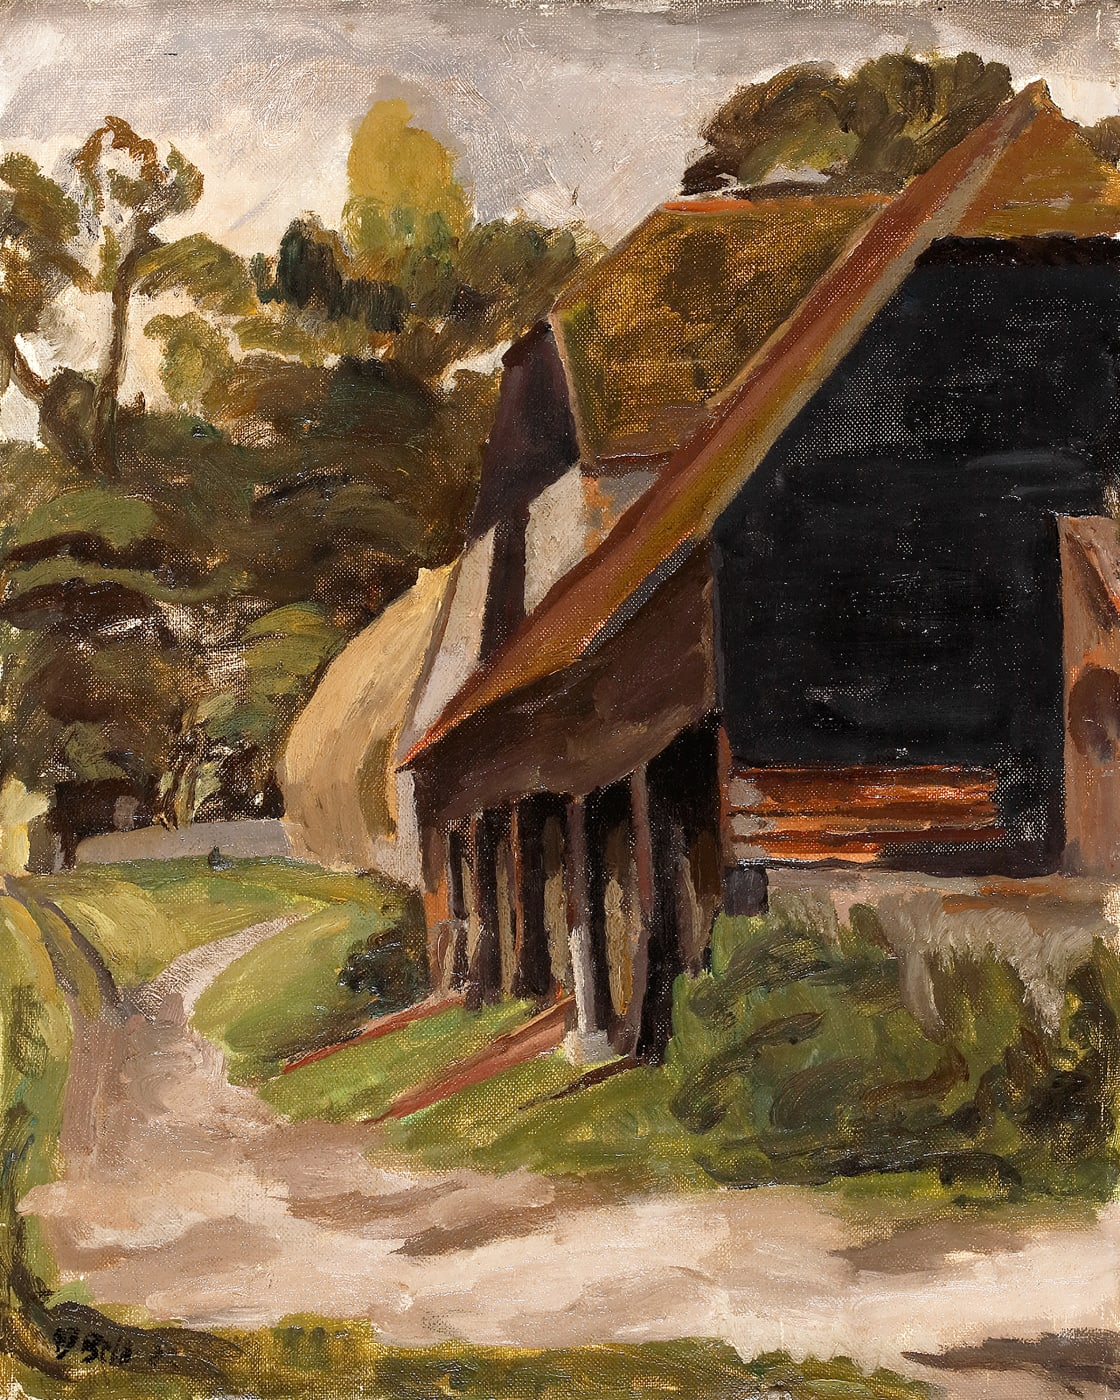 The Barn at Charleston Farm House by Vanessa Bell. Spring/Summer day at Charleston with full green trees, grass and the brown barns